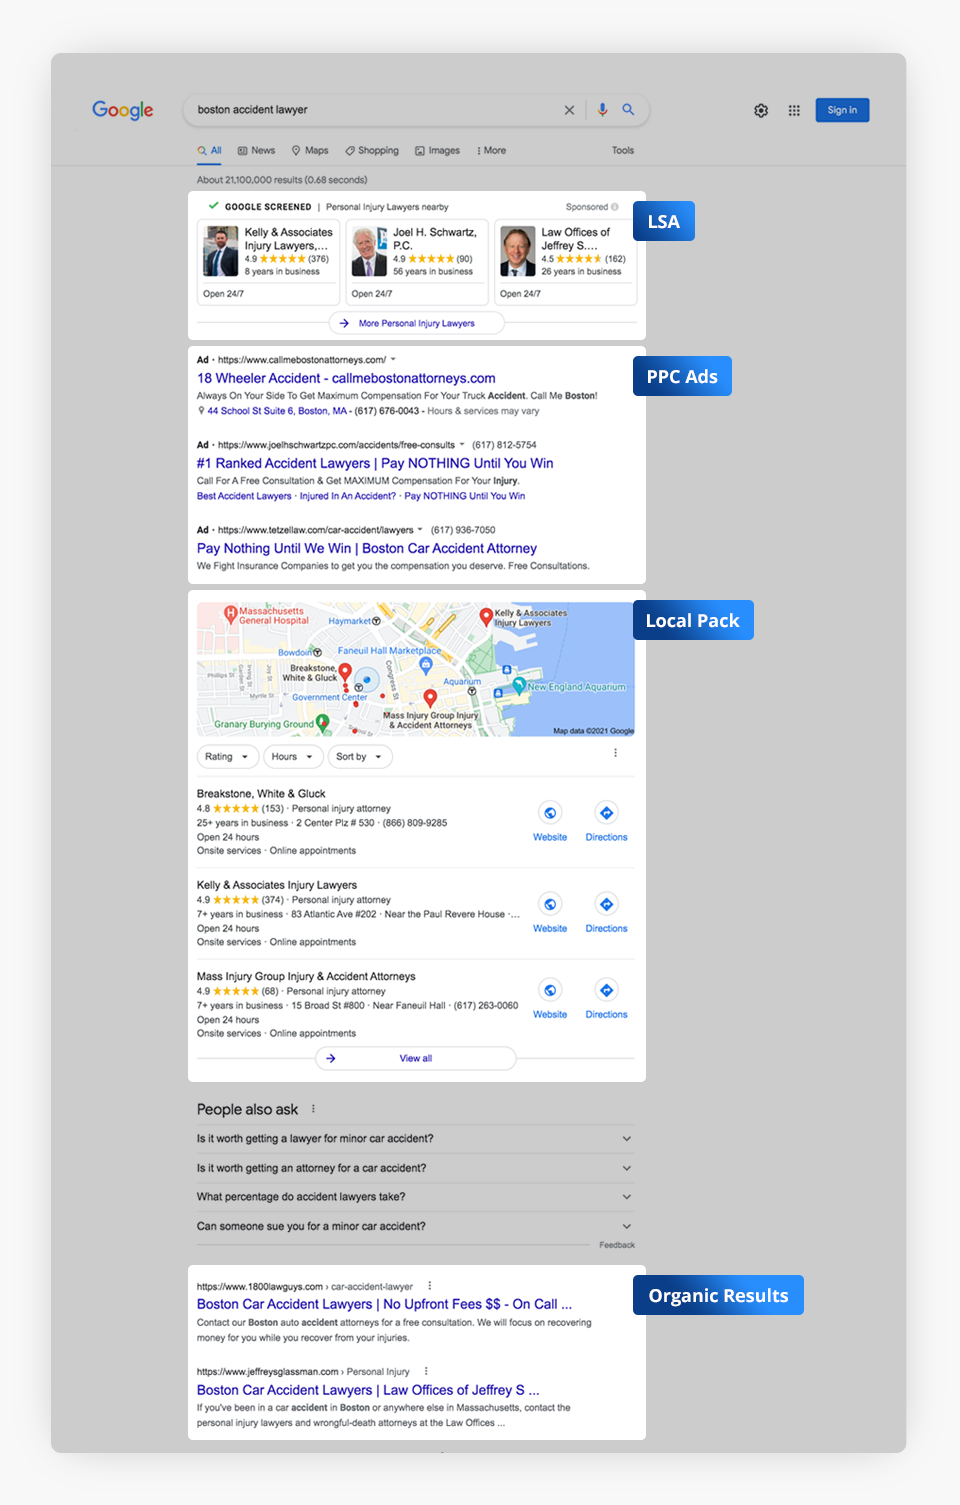 Desktop - Search engine results page